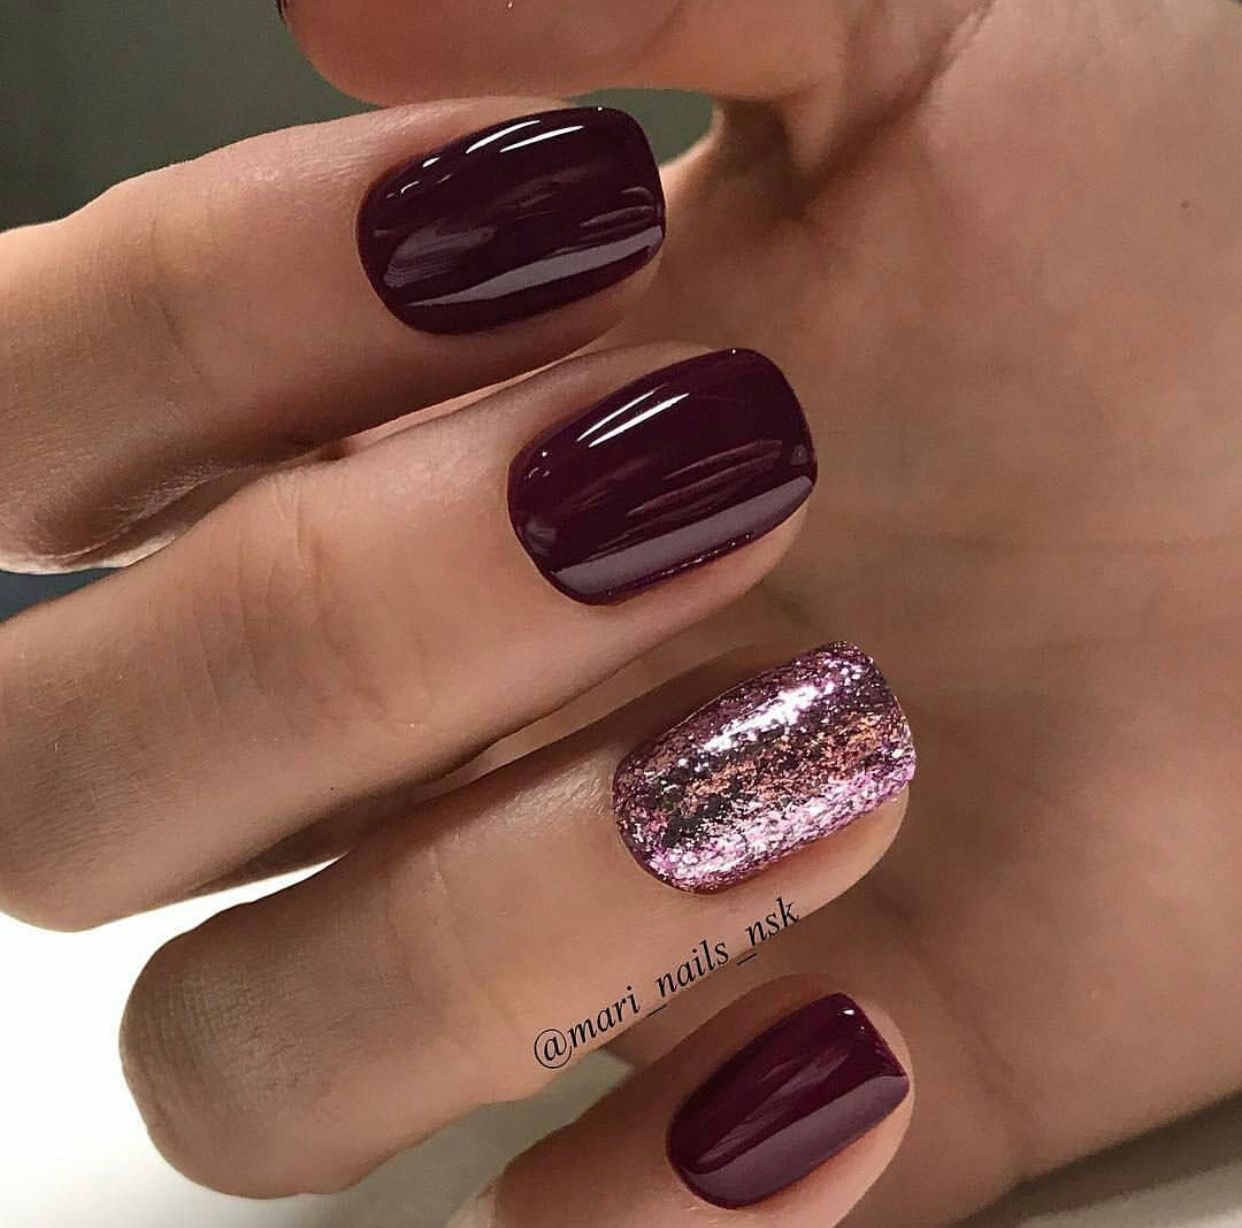 Without the glitter | Nails | Pinterest | Makeup, Manicure and Nail nail